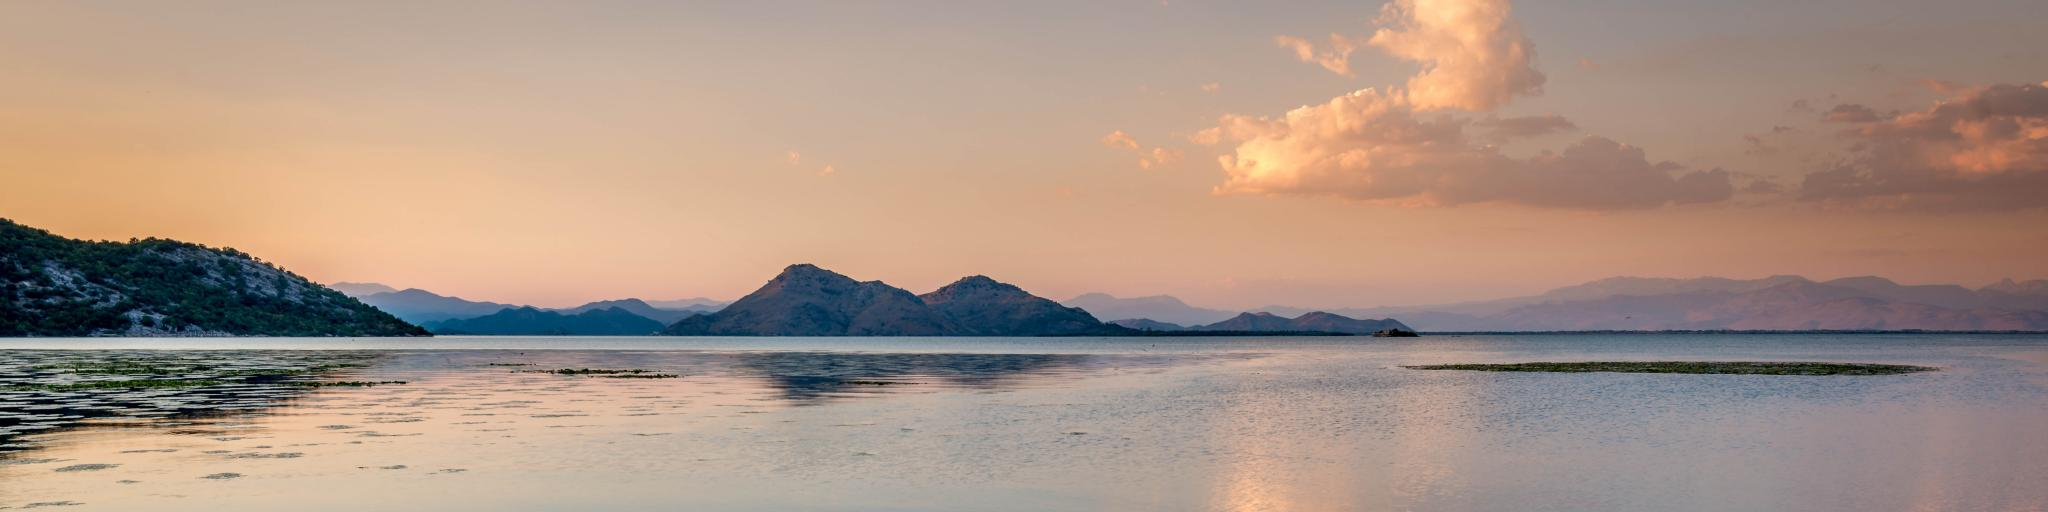 Sunset-tinged clouds reflect on the still water of Skadar Lake